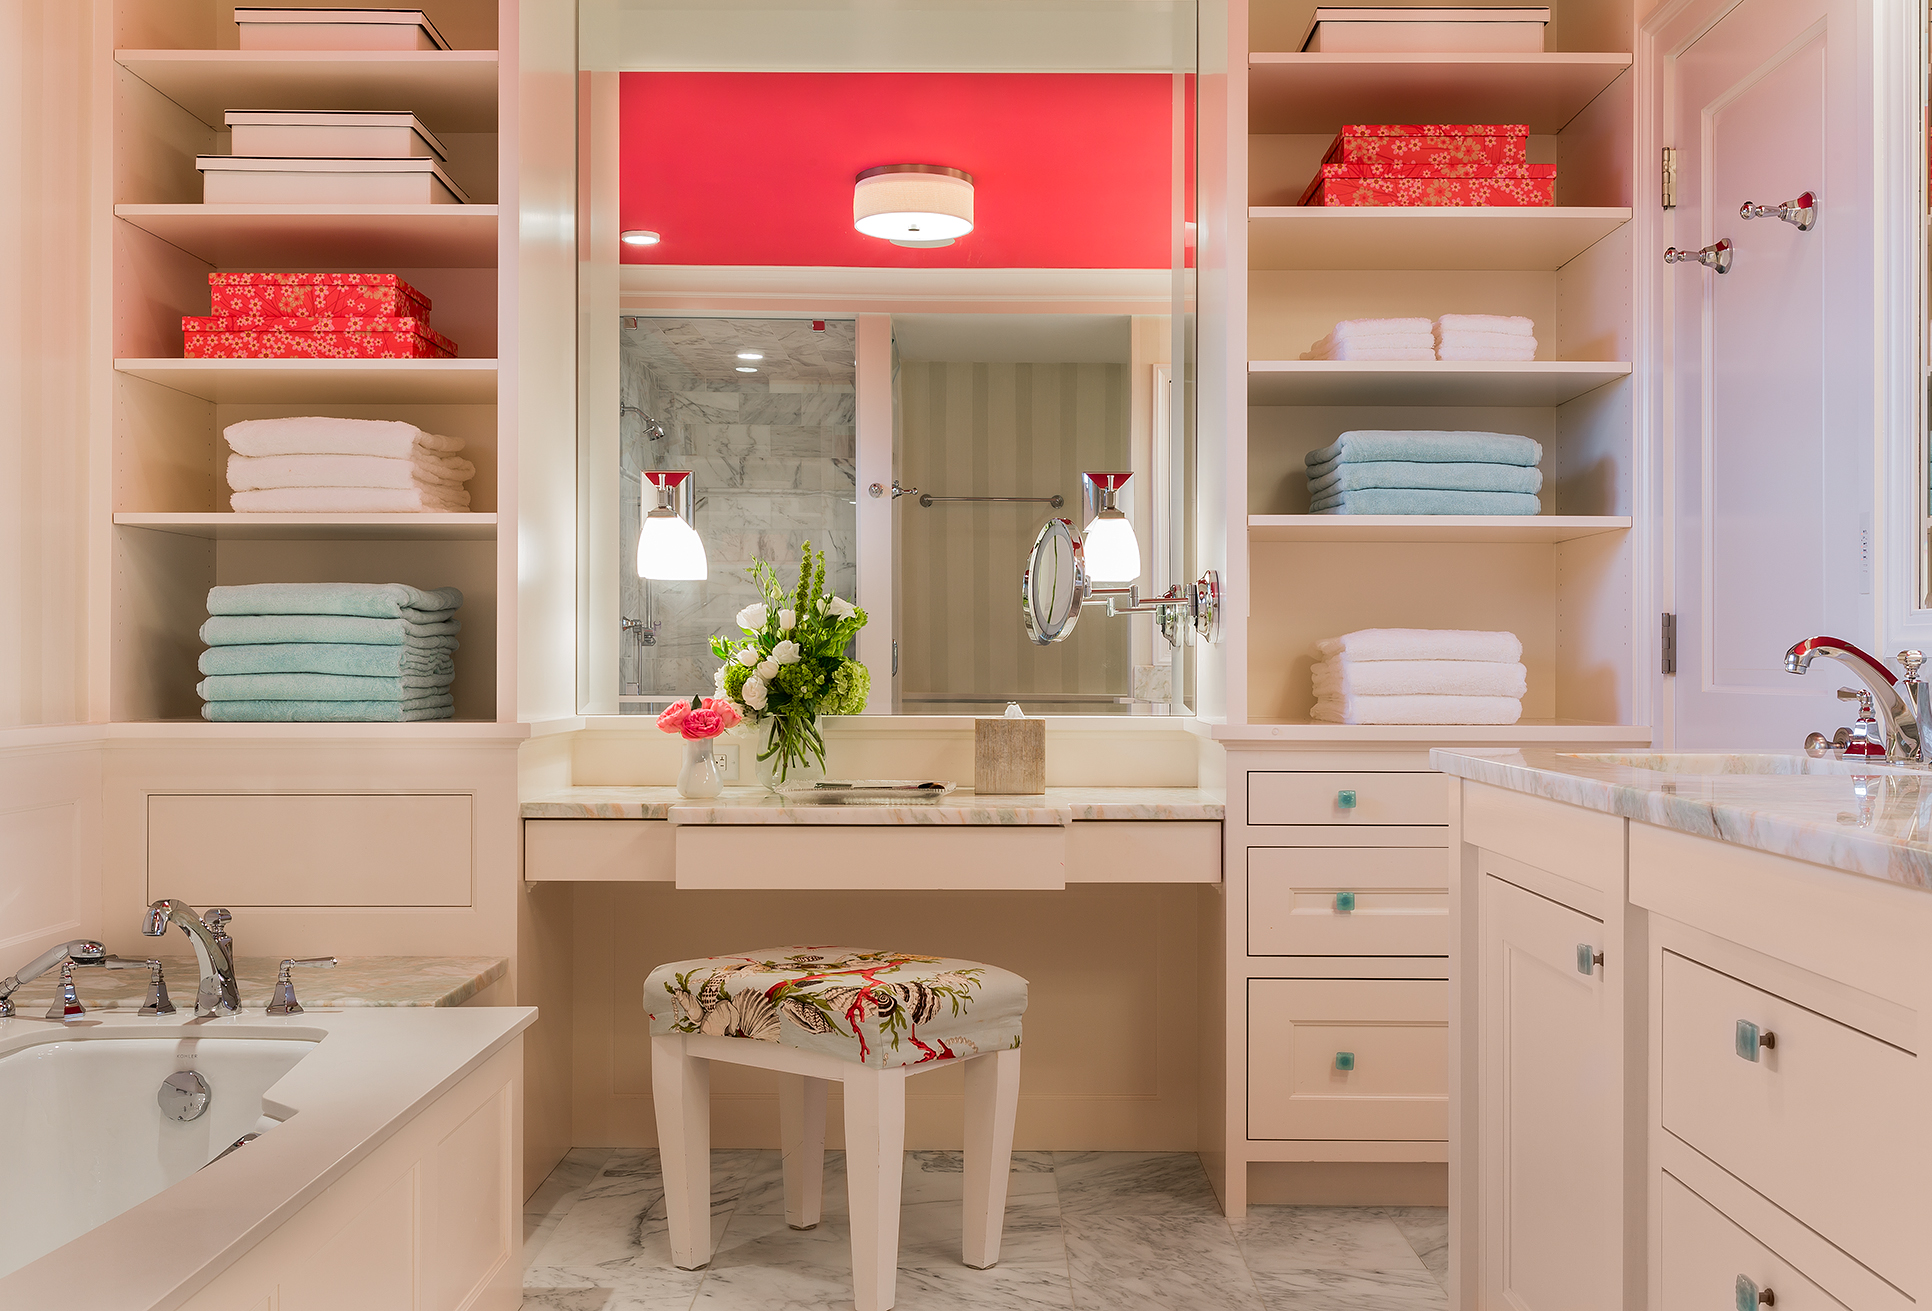 Custom shelving helps to keep this bathroom design organized in this bathroom by Boston Interior Designer Elizabeth Swartz Interiors